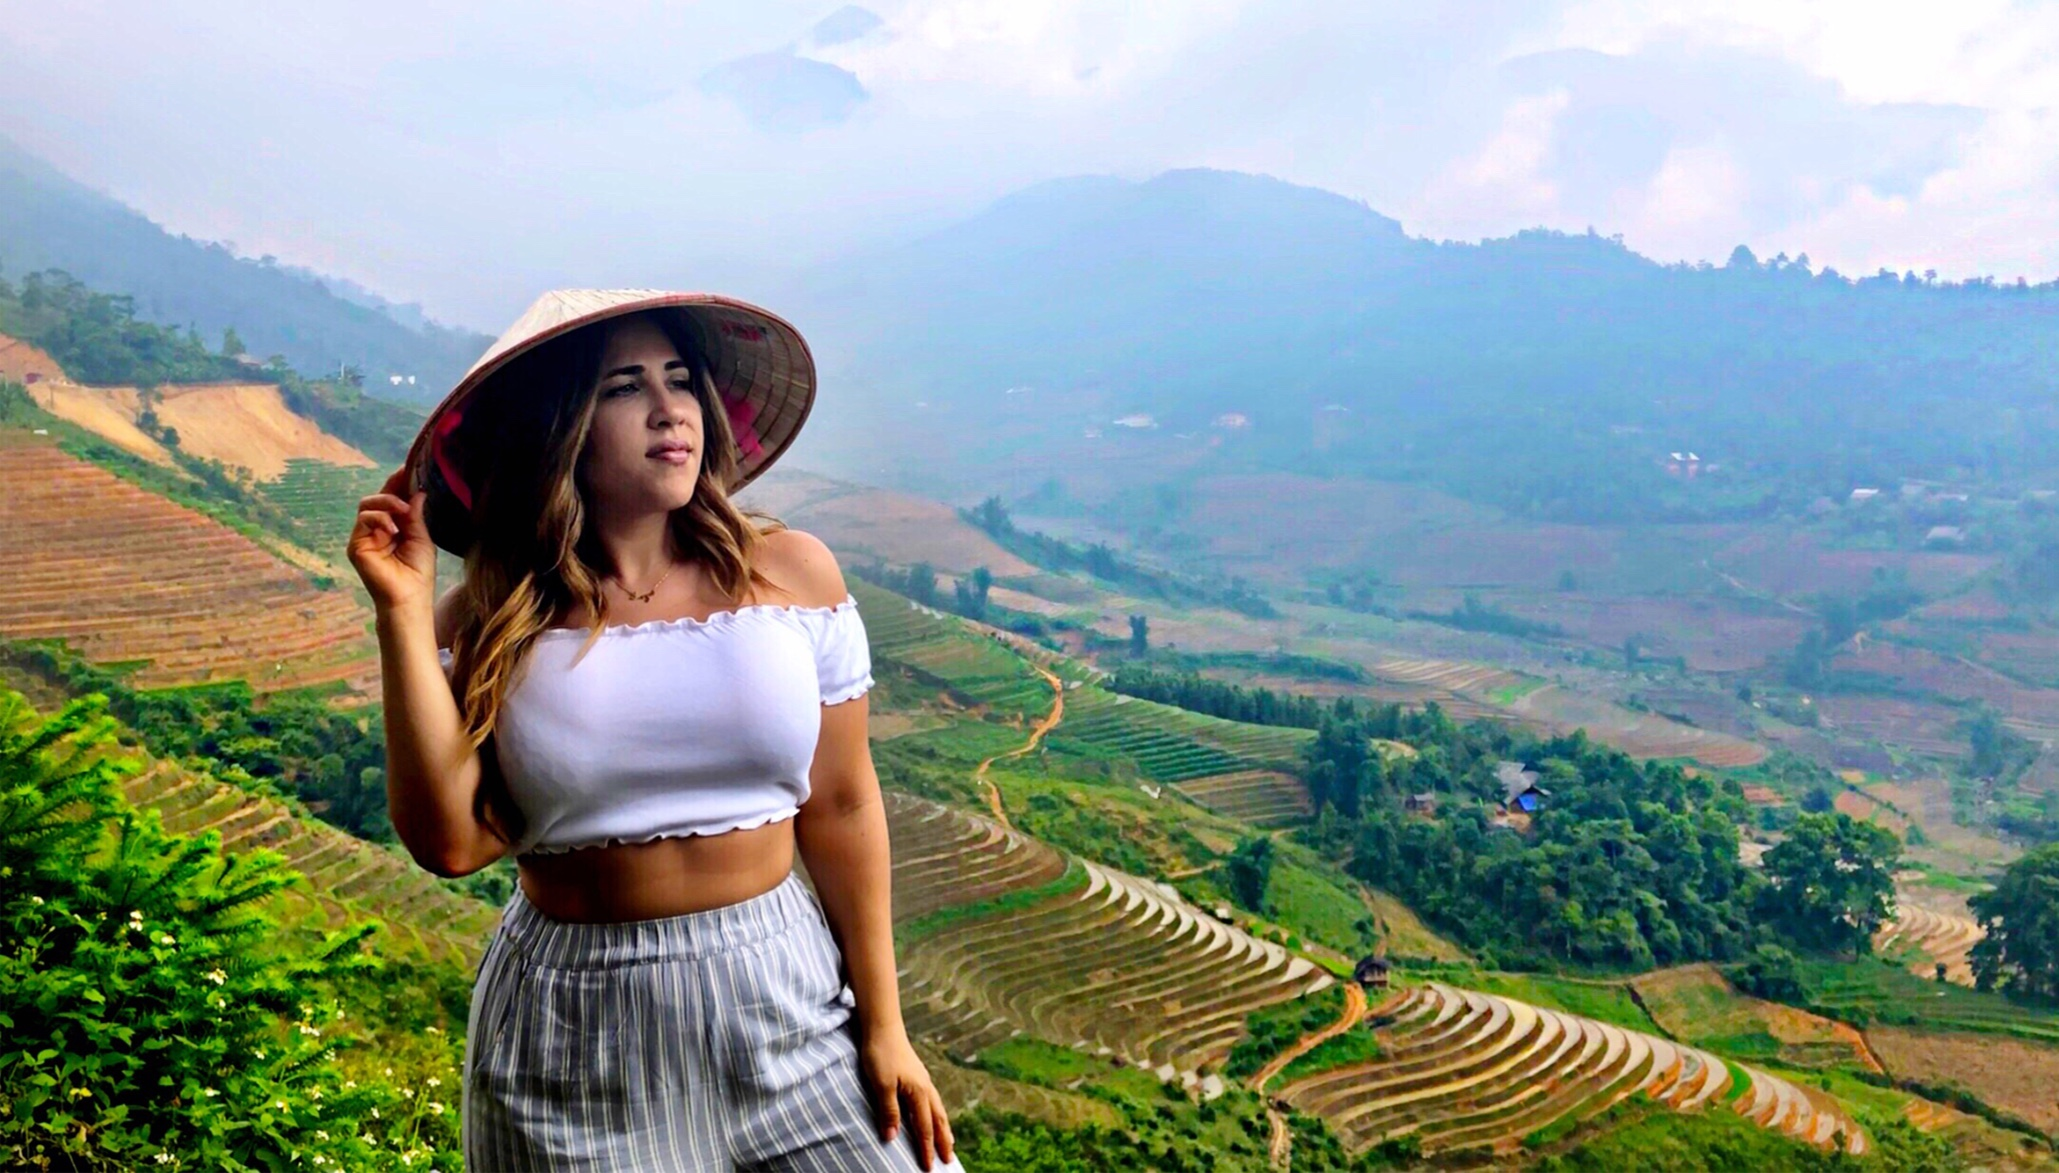 My Stay at Topas Ecolodge in Sapa Vietnam • Solo Female